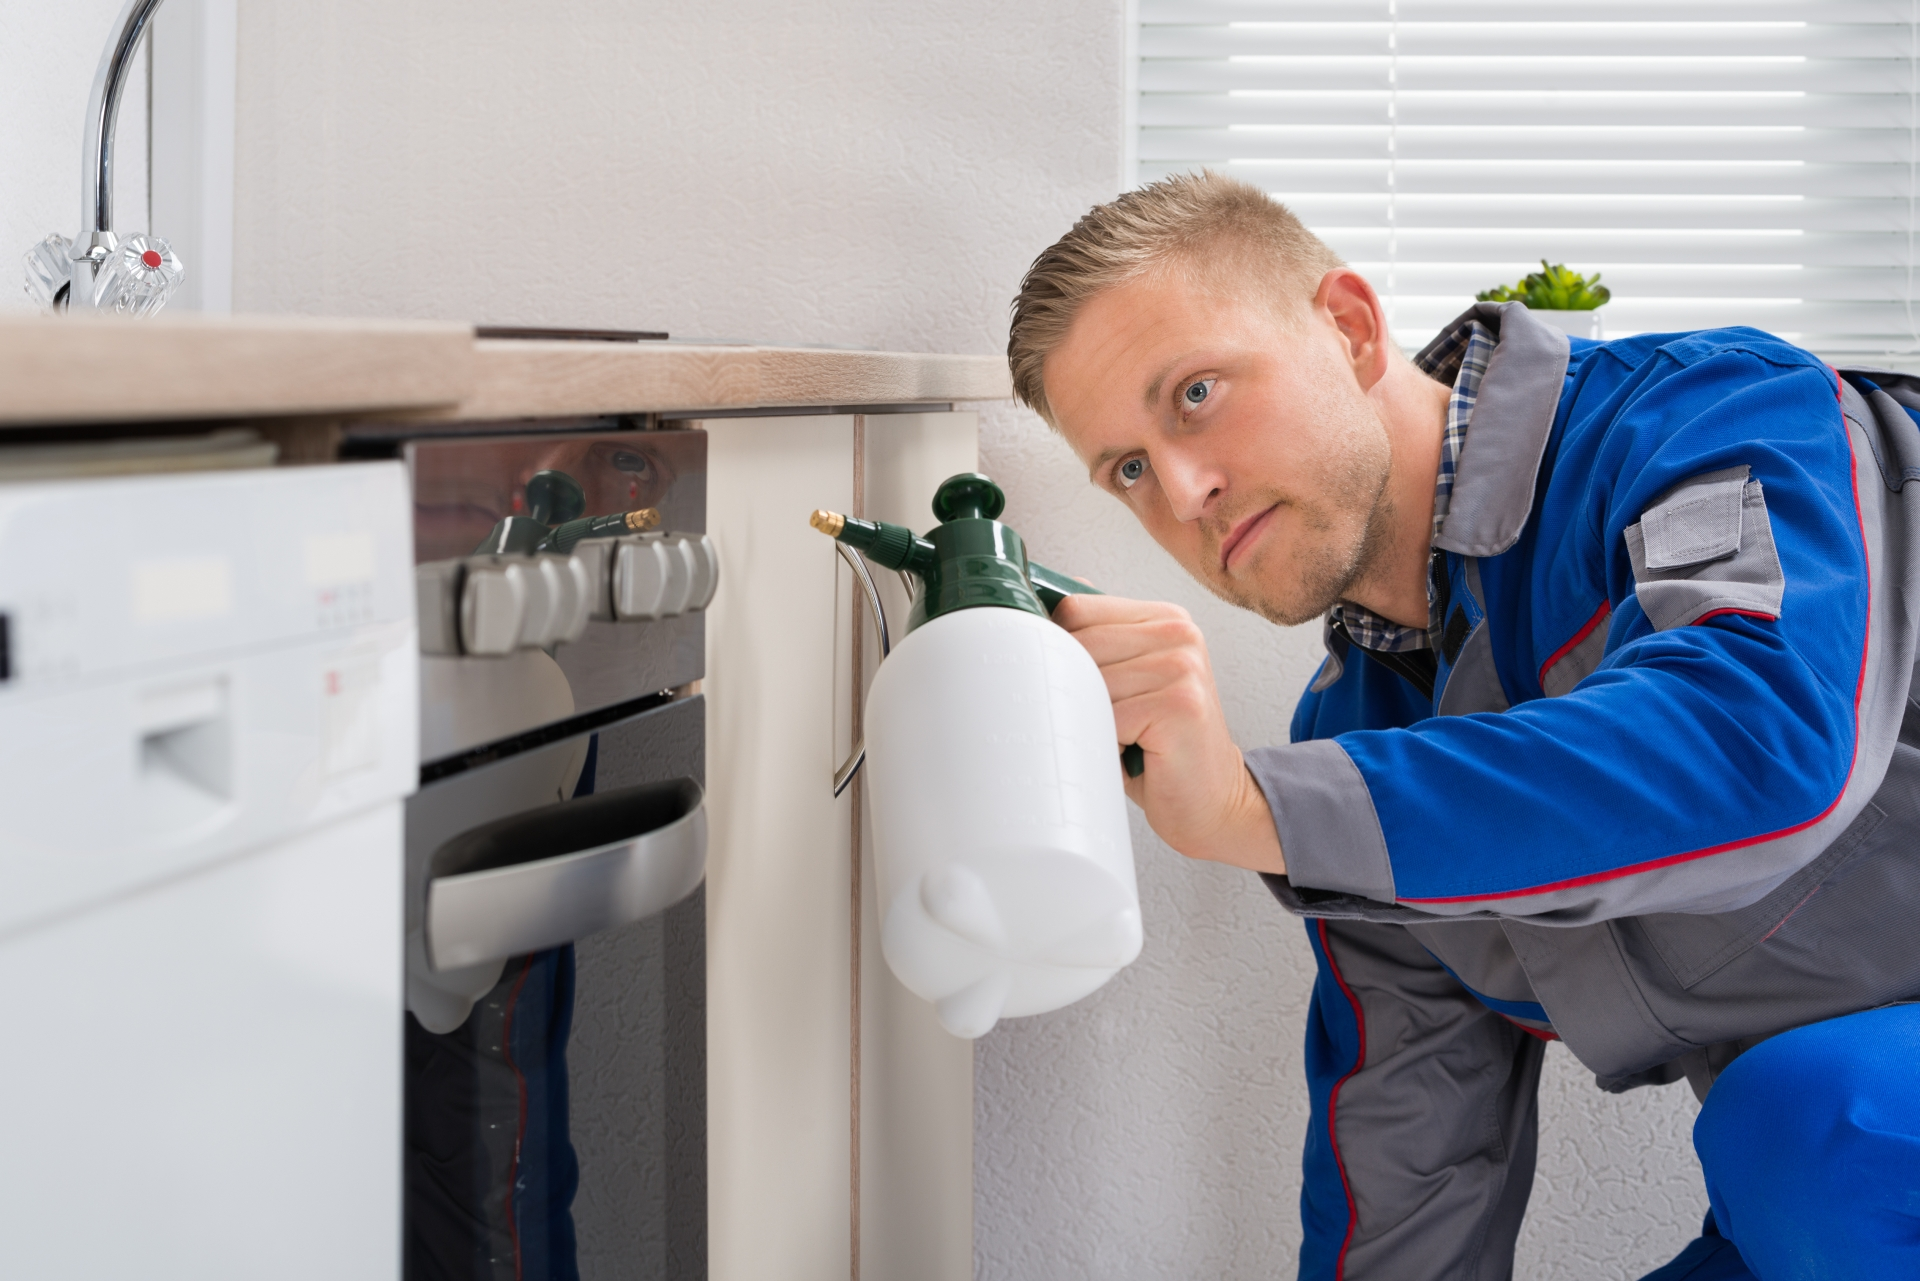 Pest Inspection, Pest Control in West Horsley, East Horsley, Effingham, KT24. Call Now 020 8166 9746